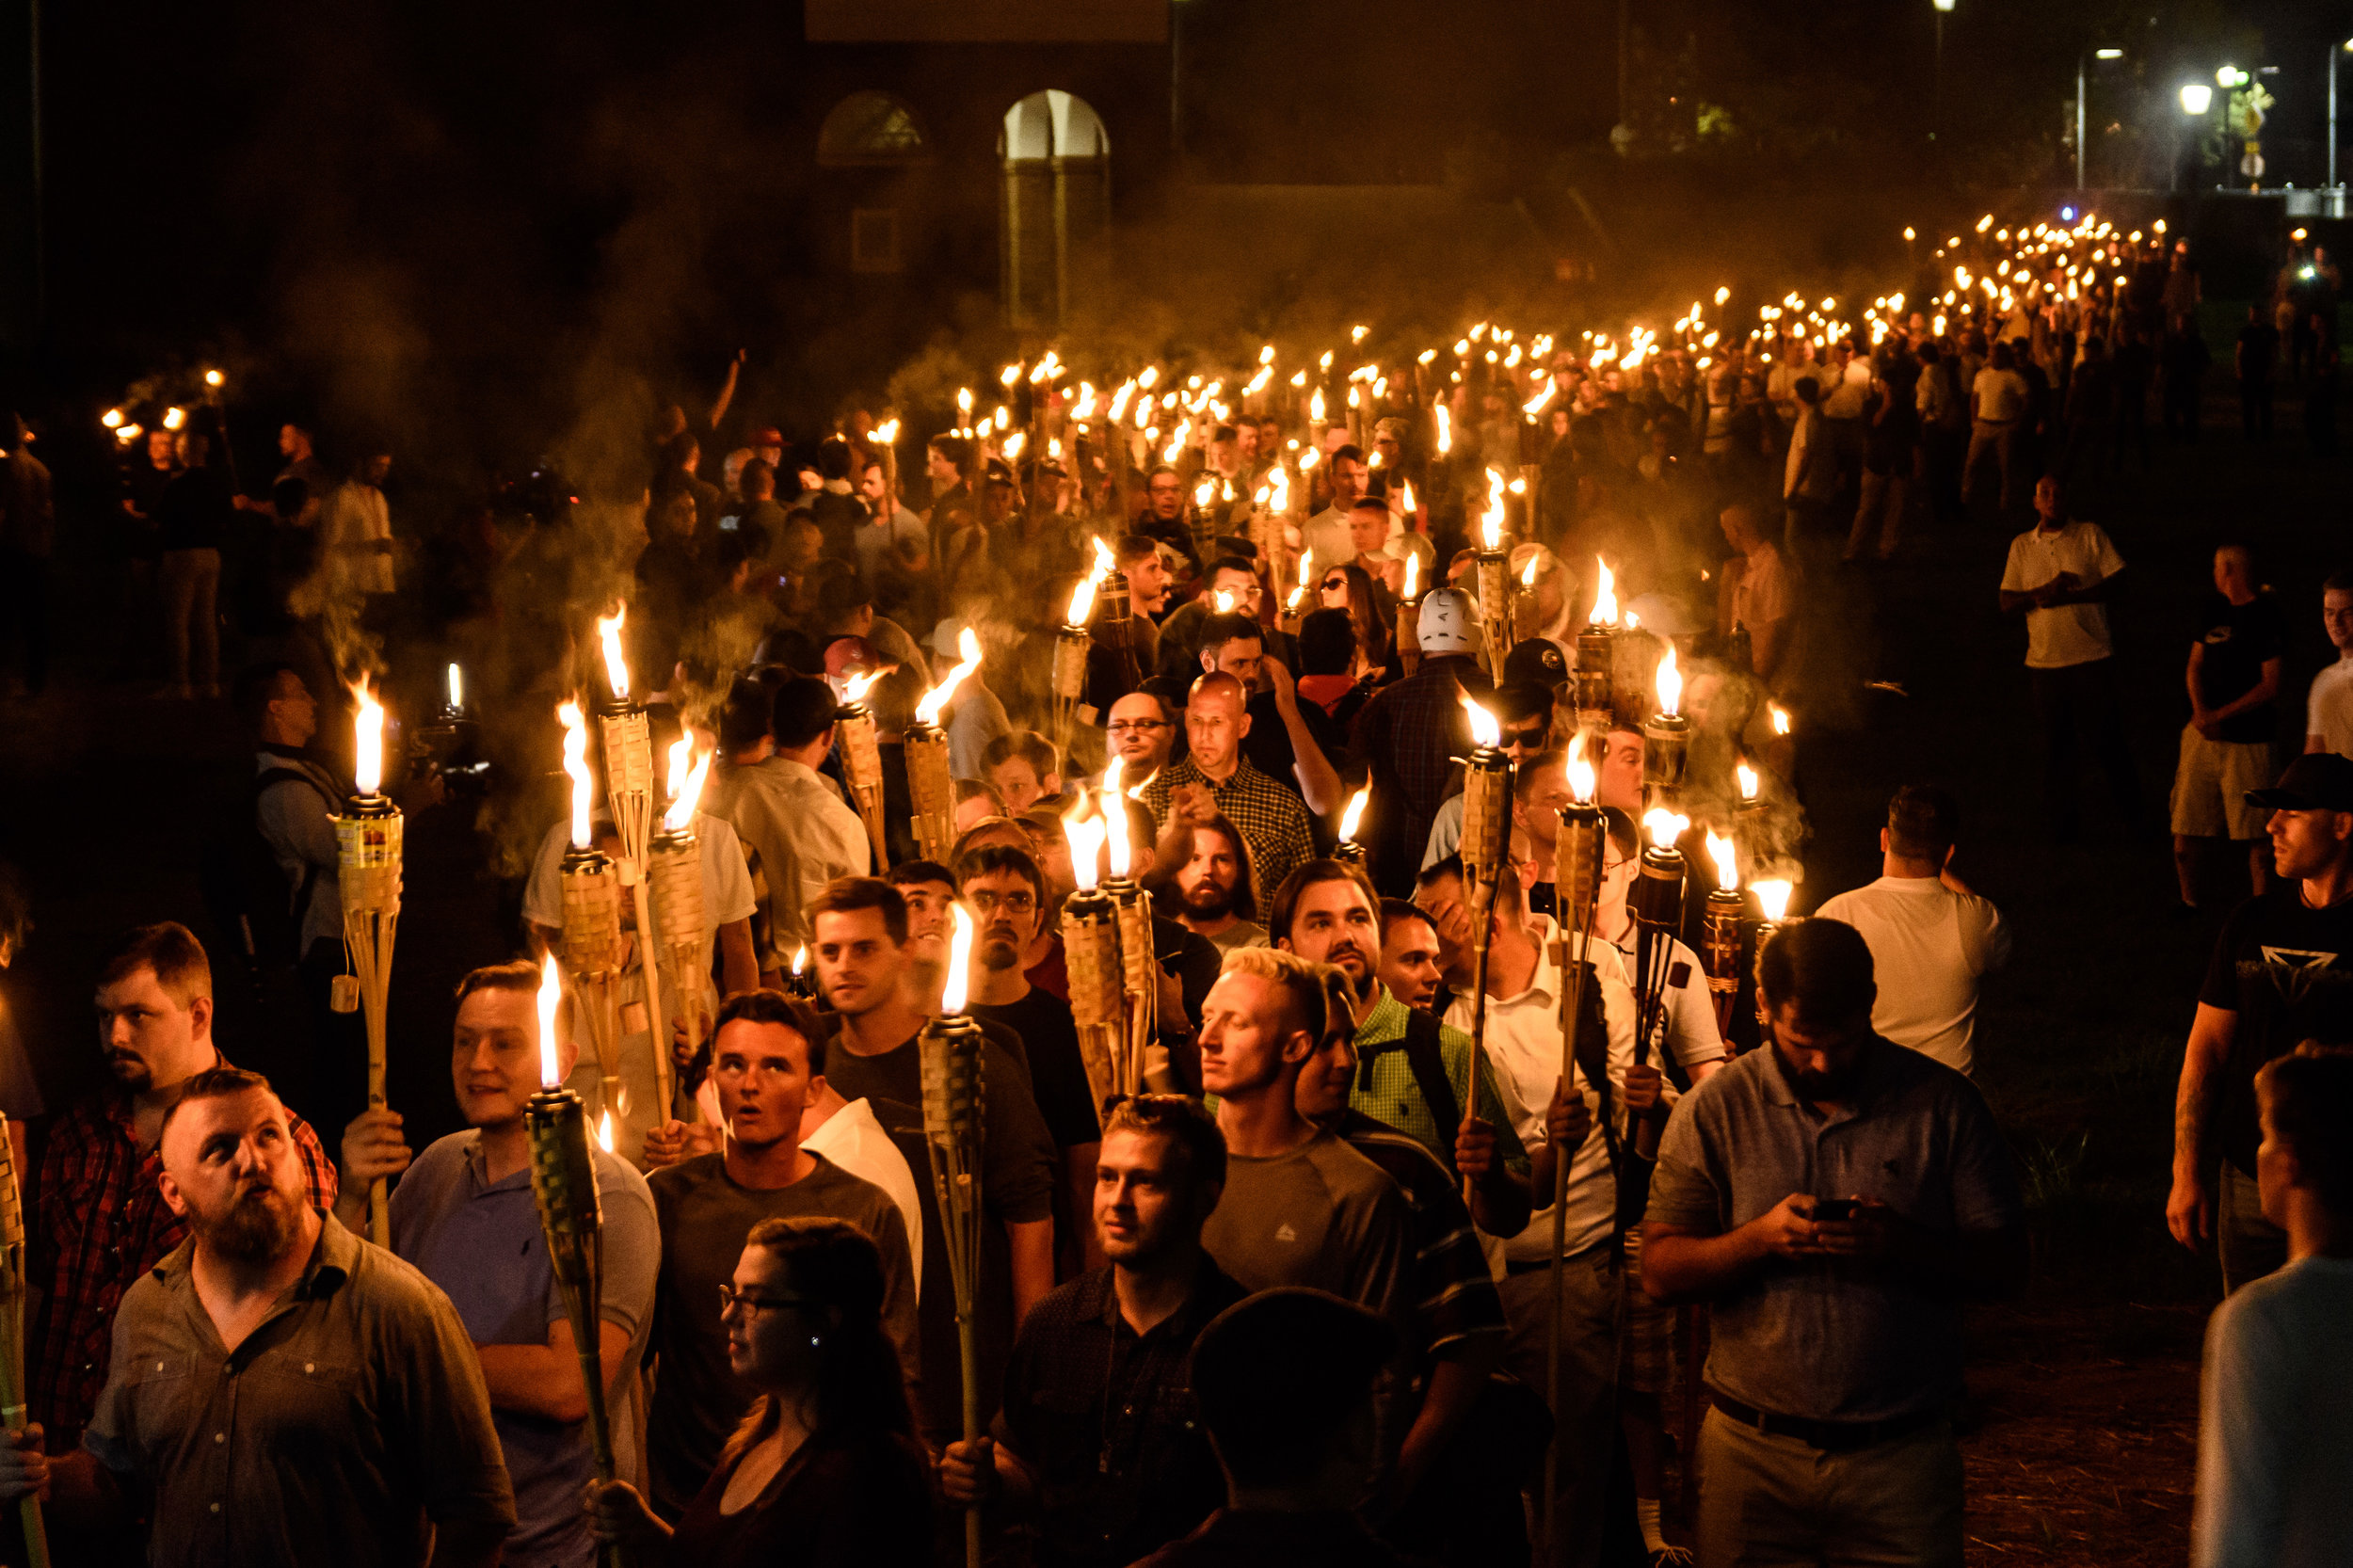 Alt-right lead a surprise march with tiki torches through the University of Virginia, the day before a white supremacist rally in Charlottesville, Virginia. (Alejandro Alvarez, News2Share)